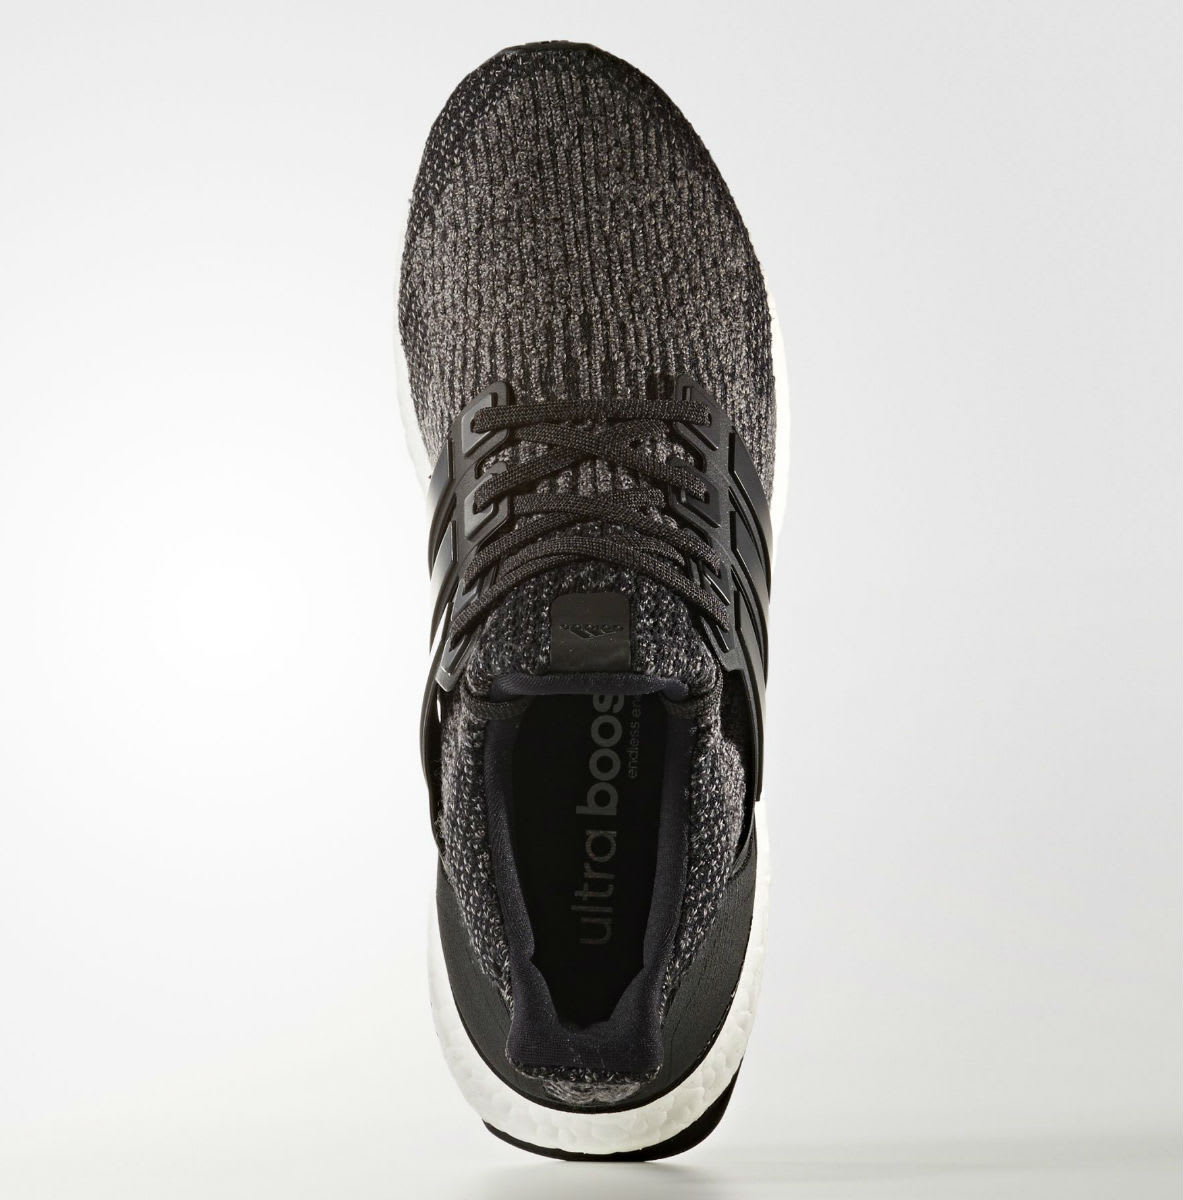 Cheap Adidas ULTRA BOOST 3.0 MULTICOLOR CG3004 BLACK NEW